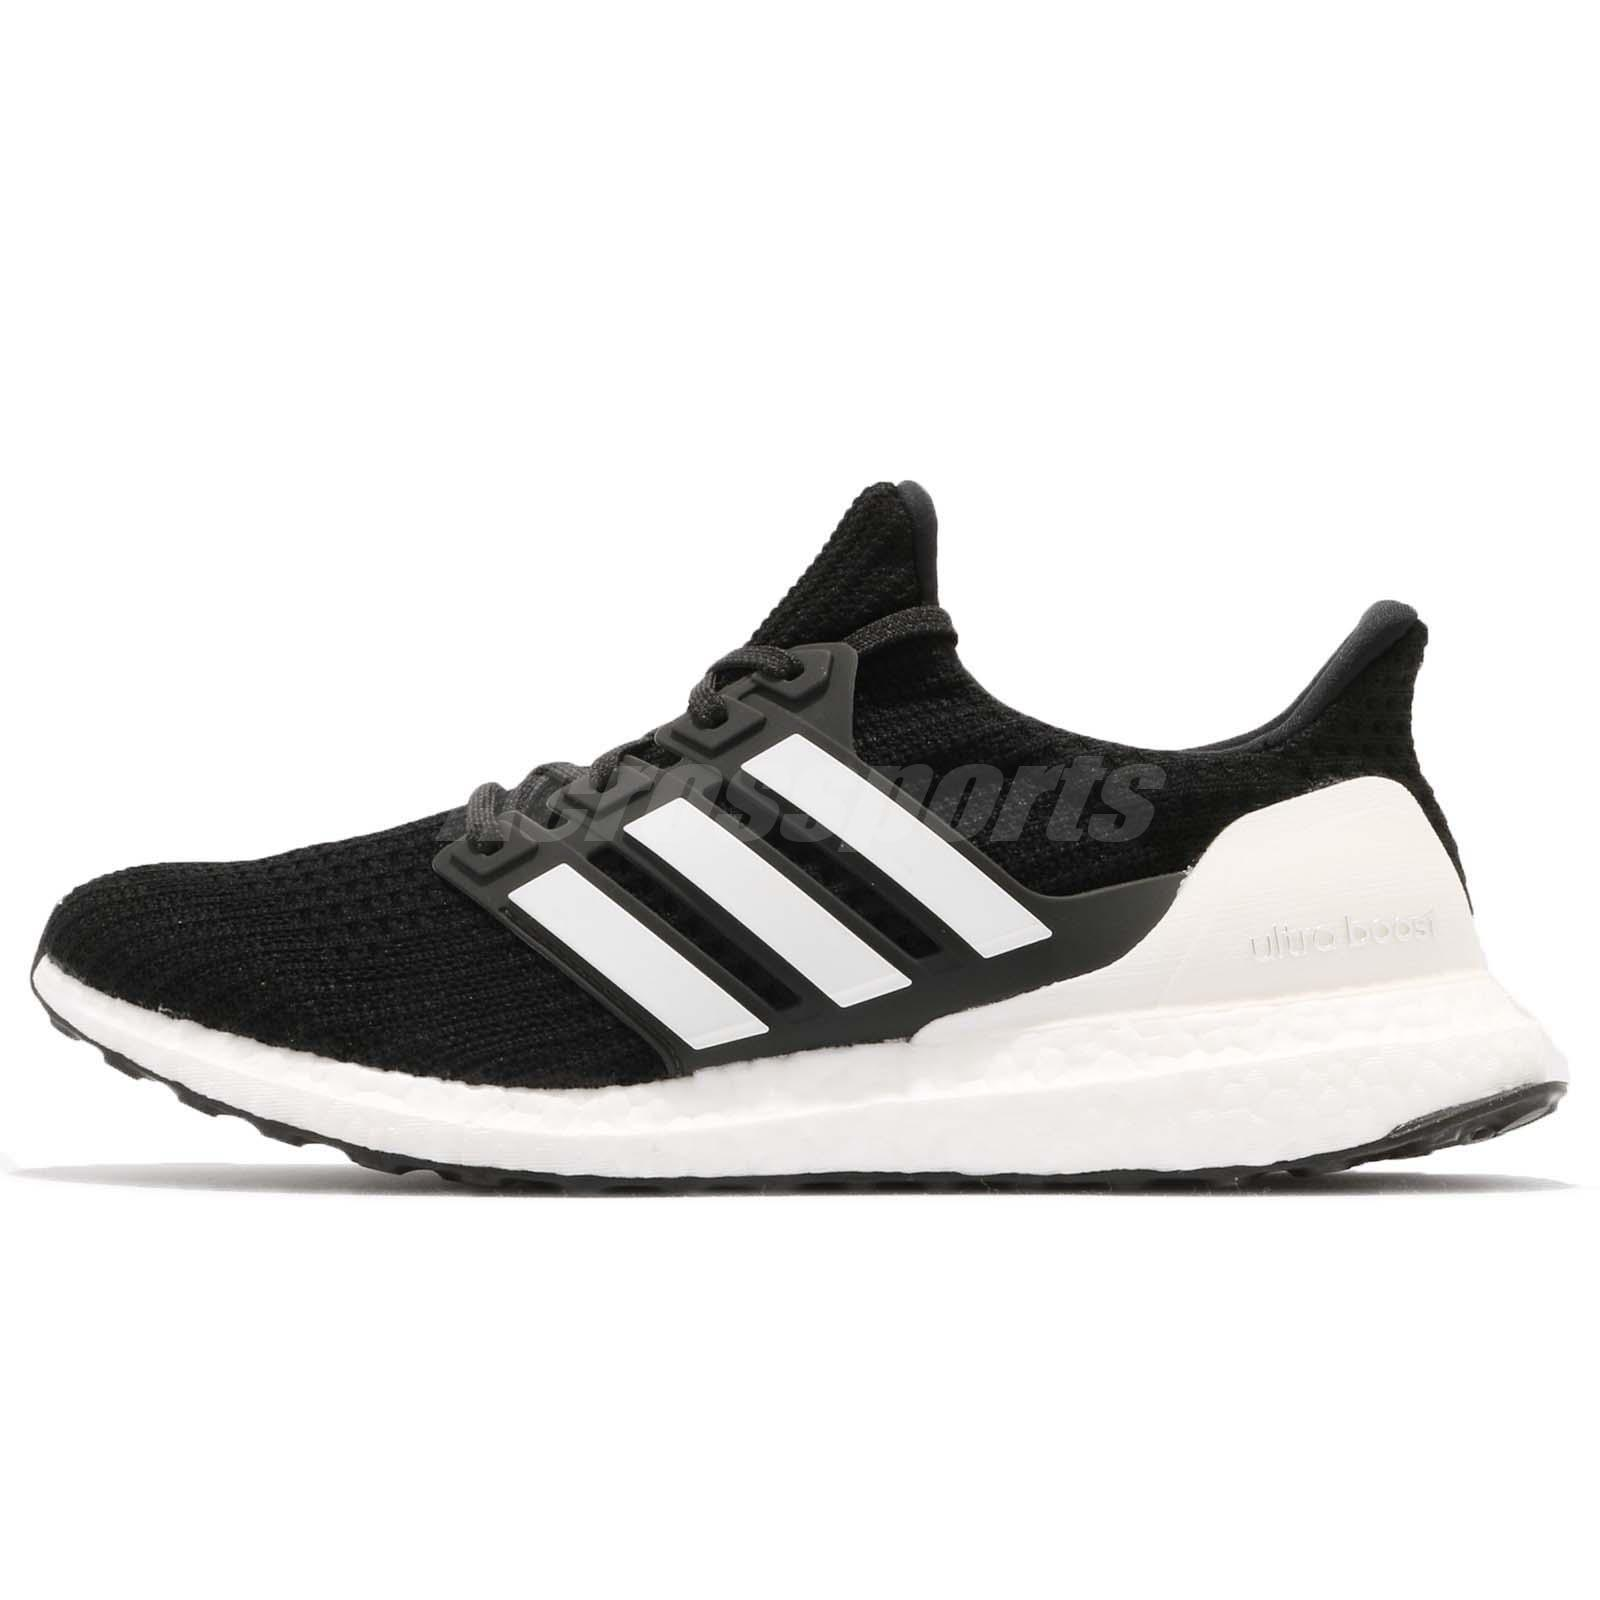 33c6dcb8e adidas UltraBOOST 4.0 Show Your Stripes Black White Men Running Shoes AQ0062